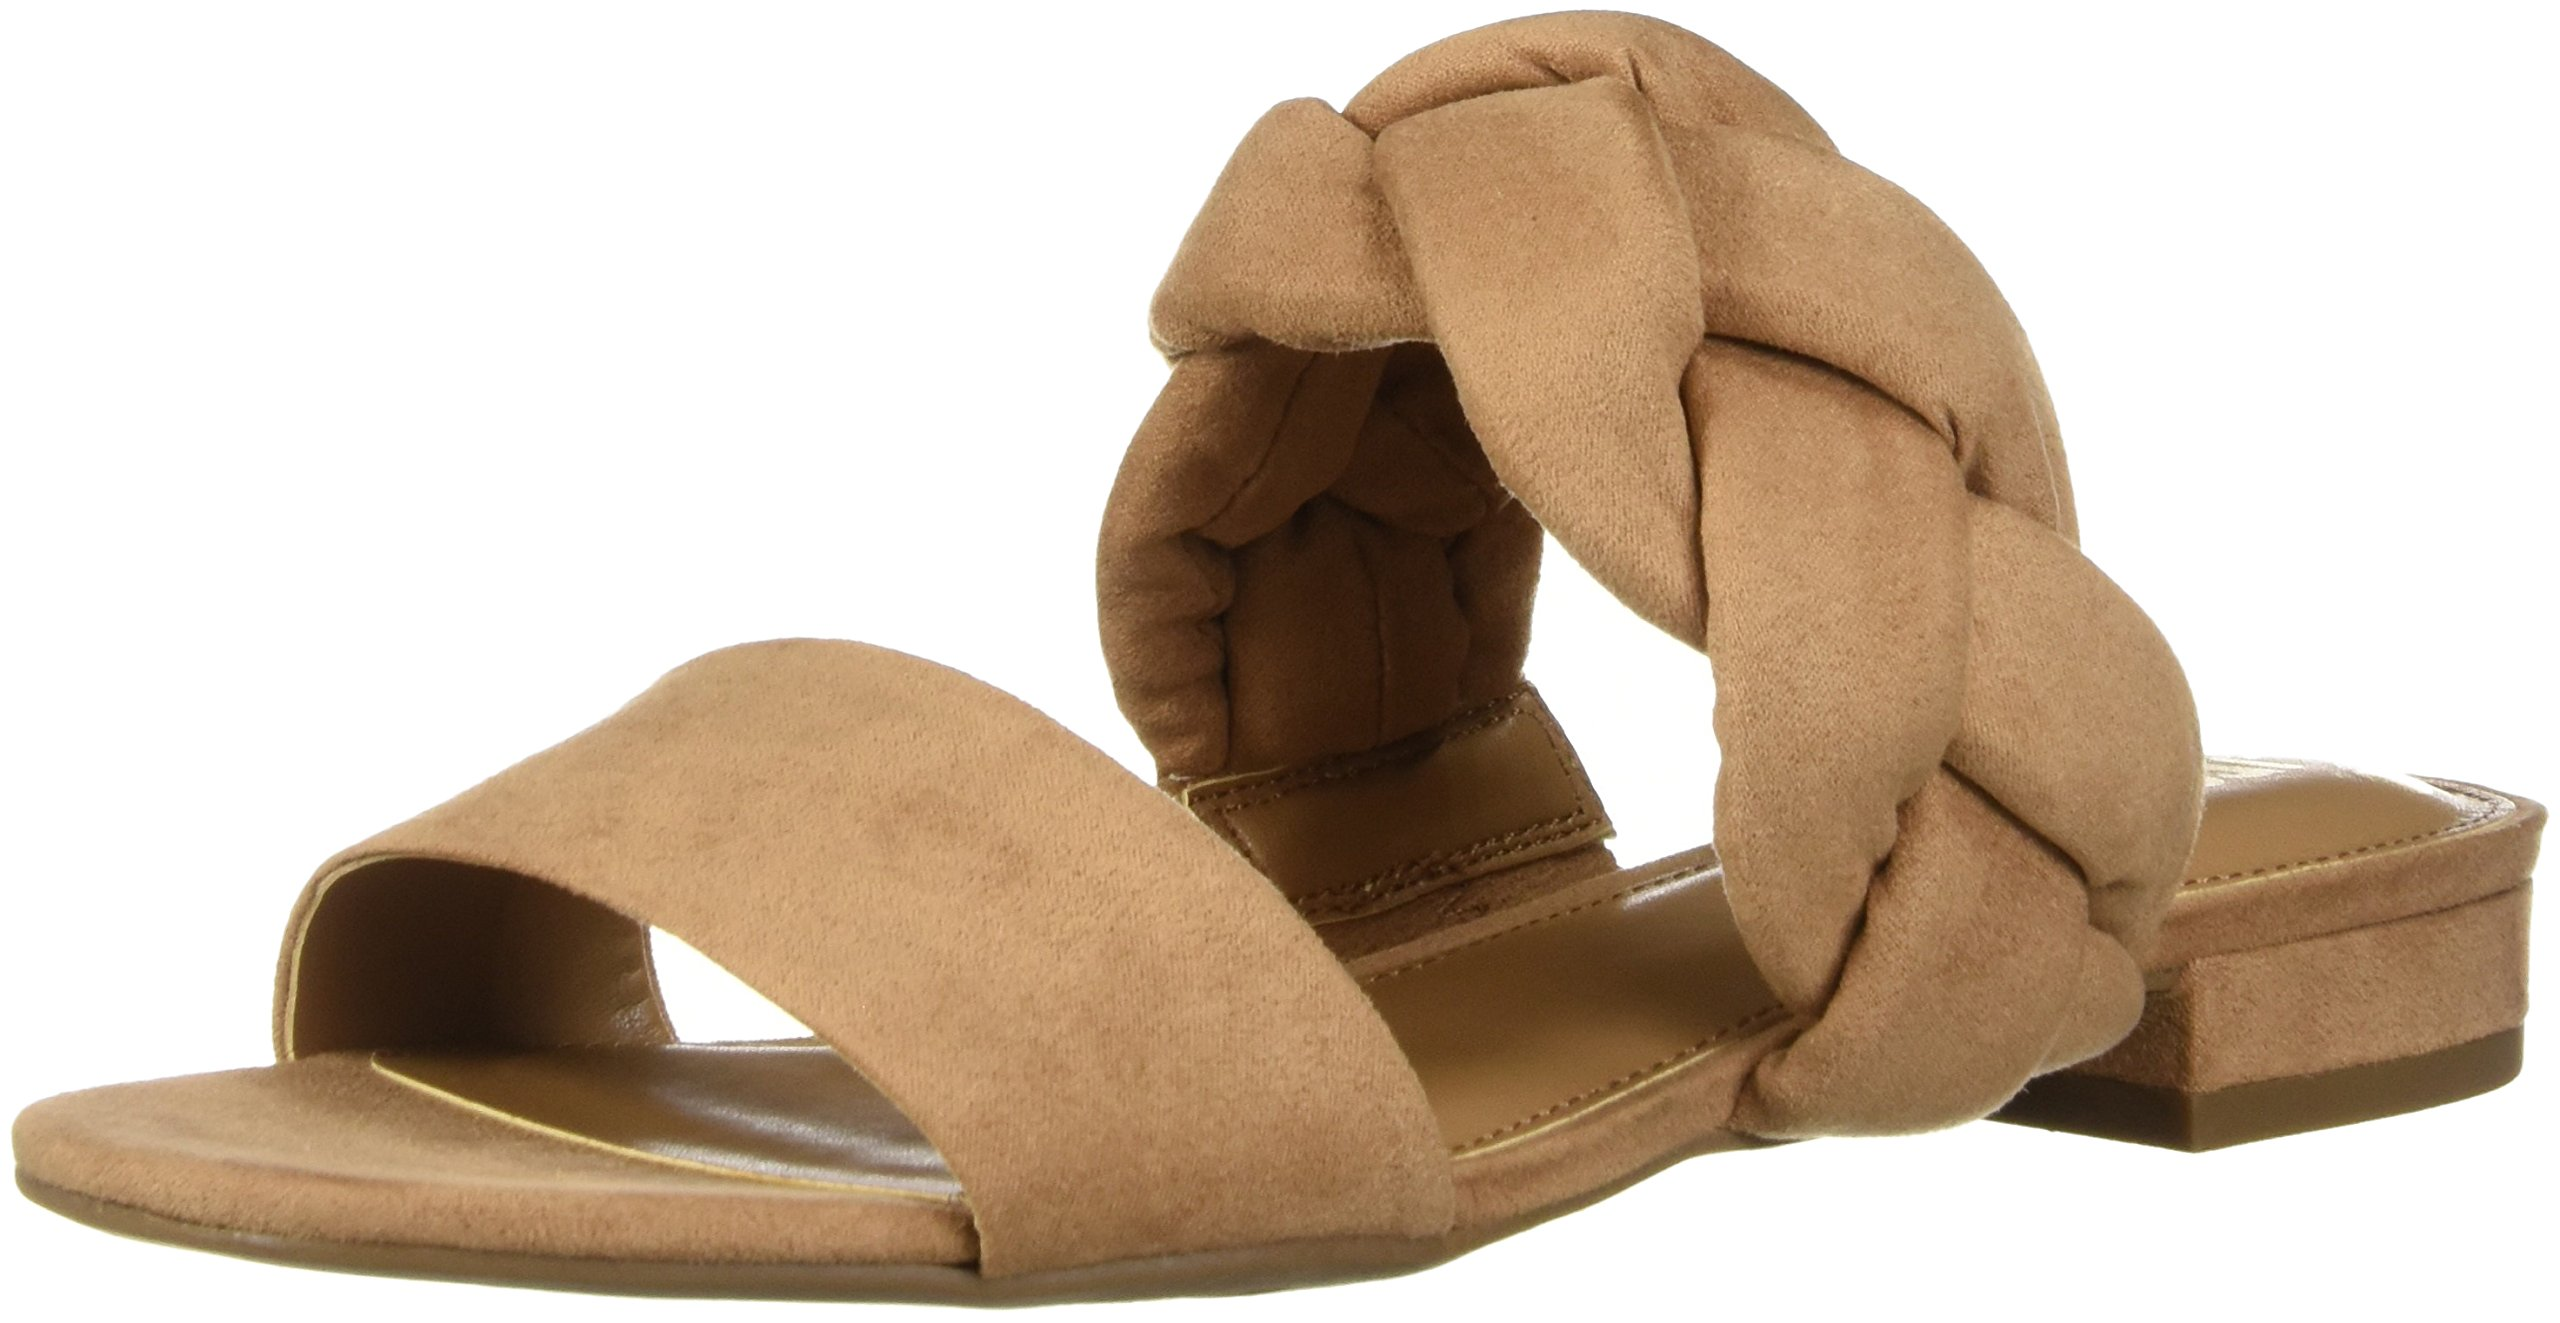 Circus by Sam Edelman Women's Danielle Slide Sandal, Golden Caramel, 6.5 M US